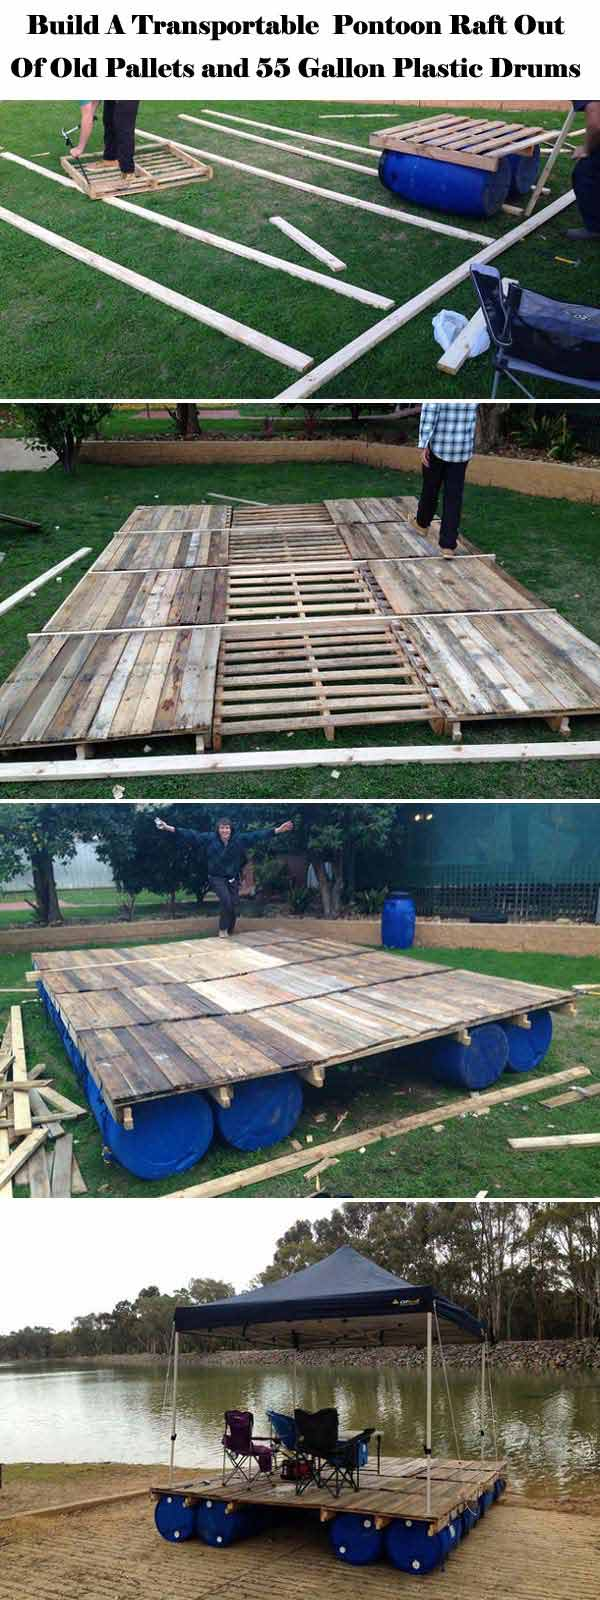 Transportable pontoon raft out of old pallets